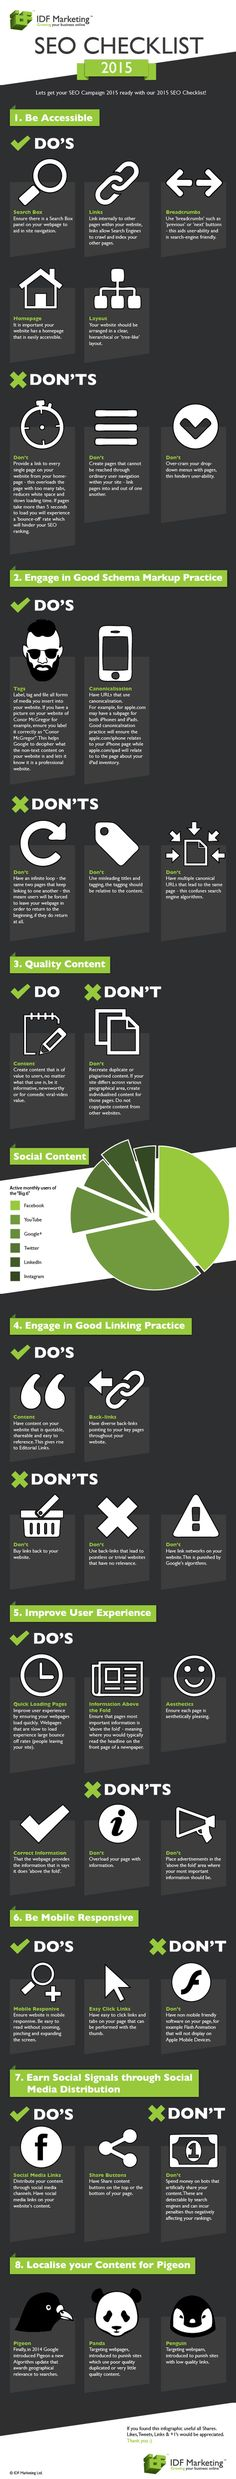 With the ever changing landscape of Digital and especially SEO in 2015 more than ever it is critical for businesses to understand what will benefit and what will harm their organic search efforts for their business website. With this in mind IDF Marketing have created this 2015 SEO Checklist for business to ensure their SEO…